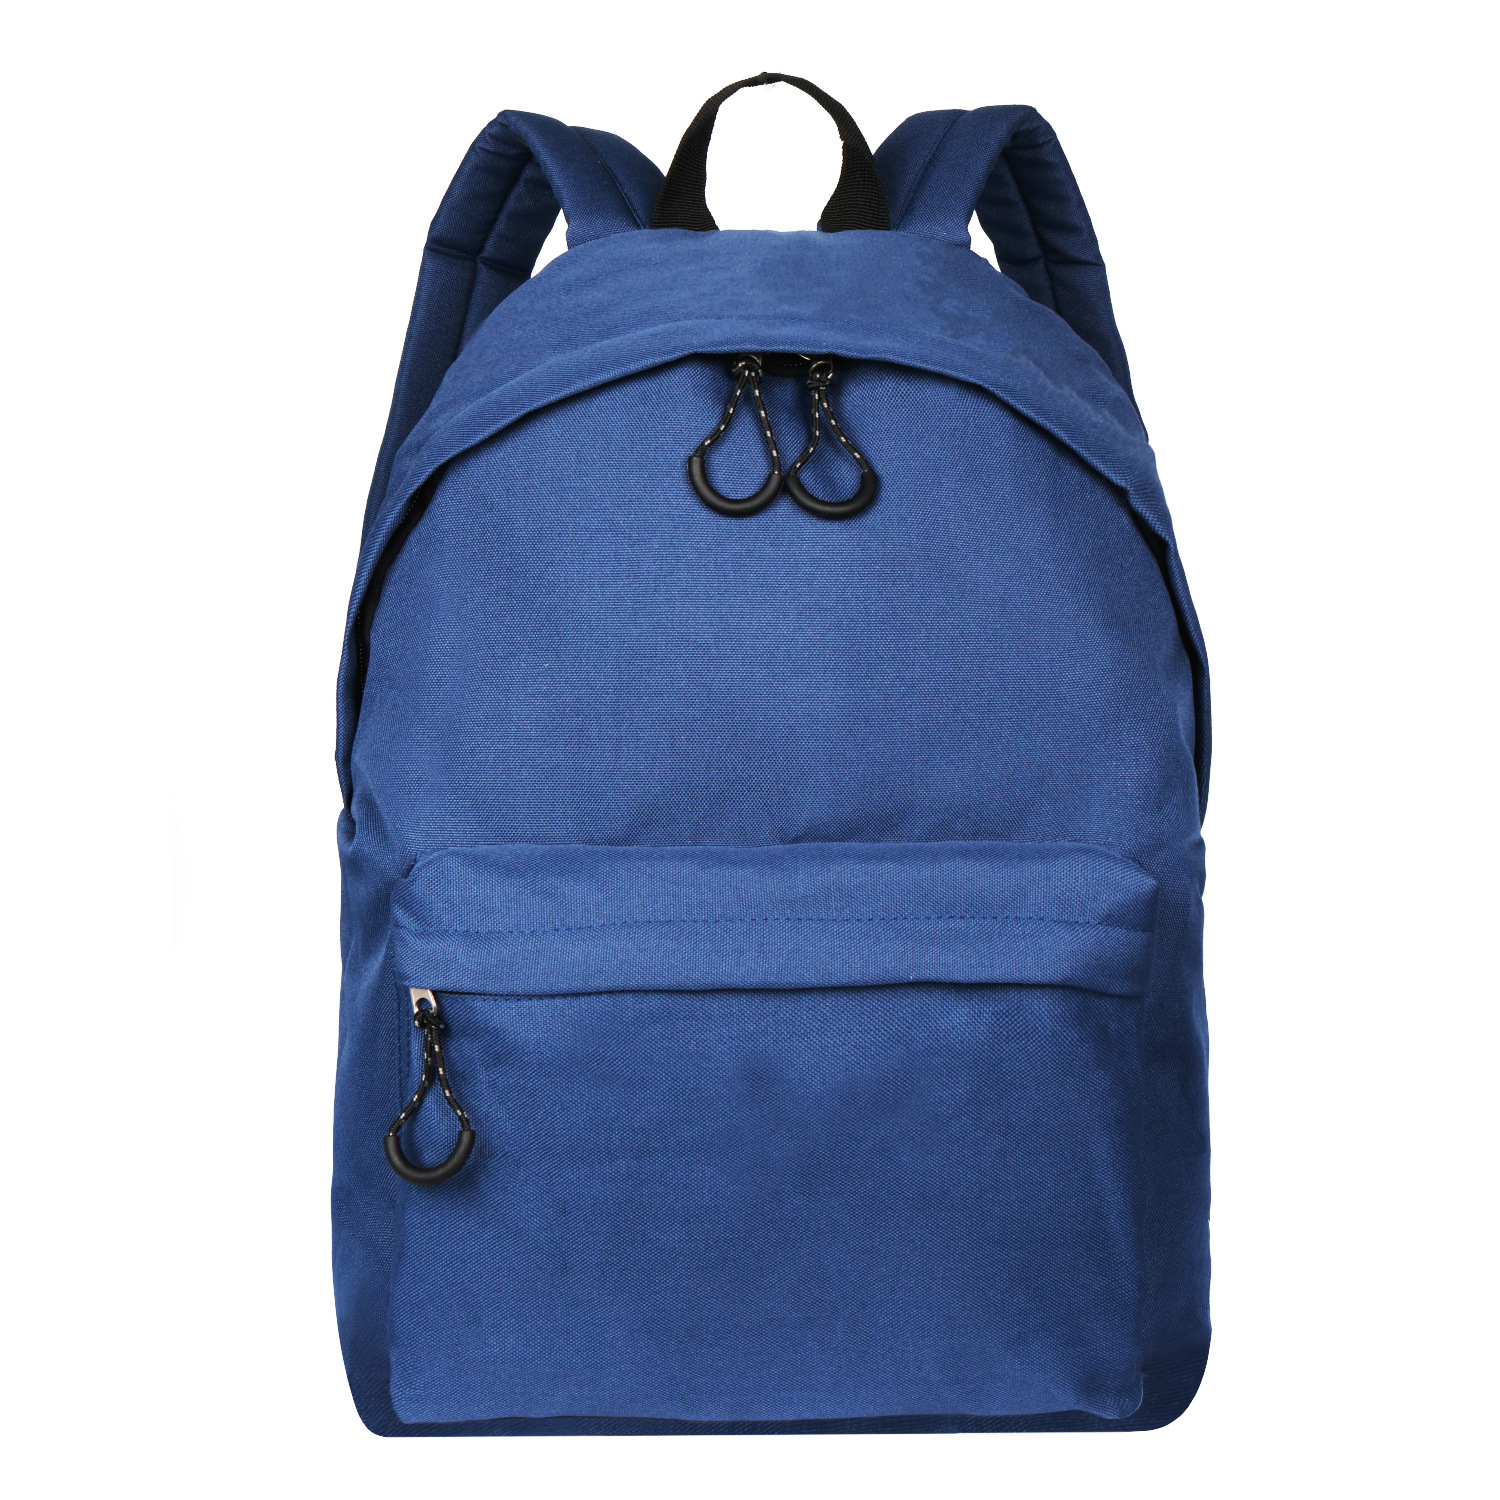 Korea Style Fashion Backpack for Men and Women Preppy Style Soft Back Pack Unisex School Bags Big Capacity Canvas Bag, Dark Blue